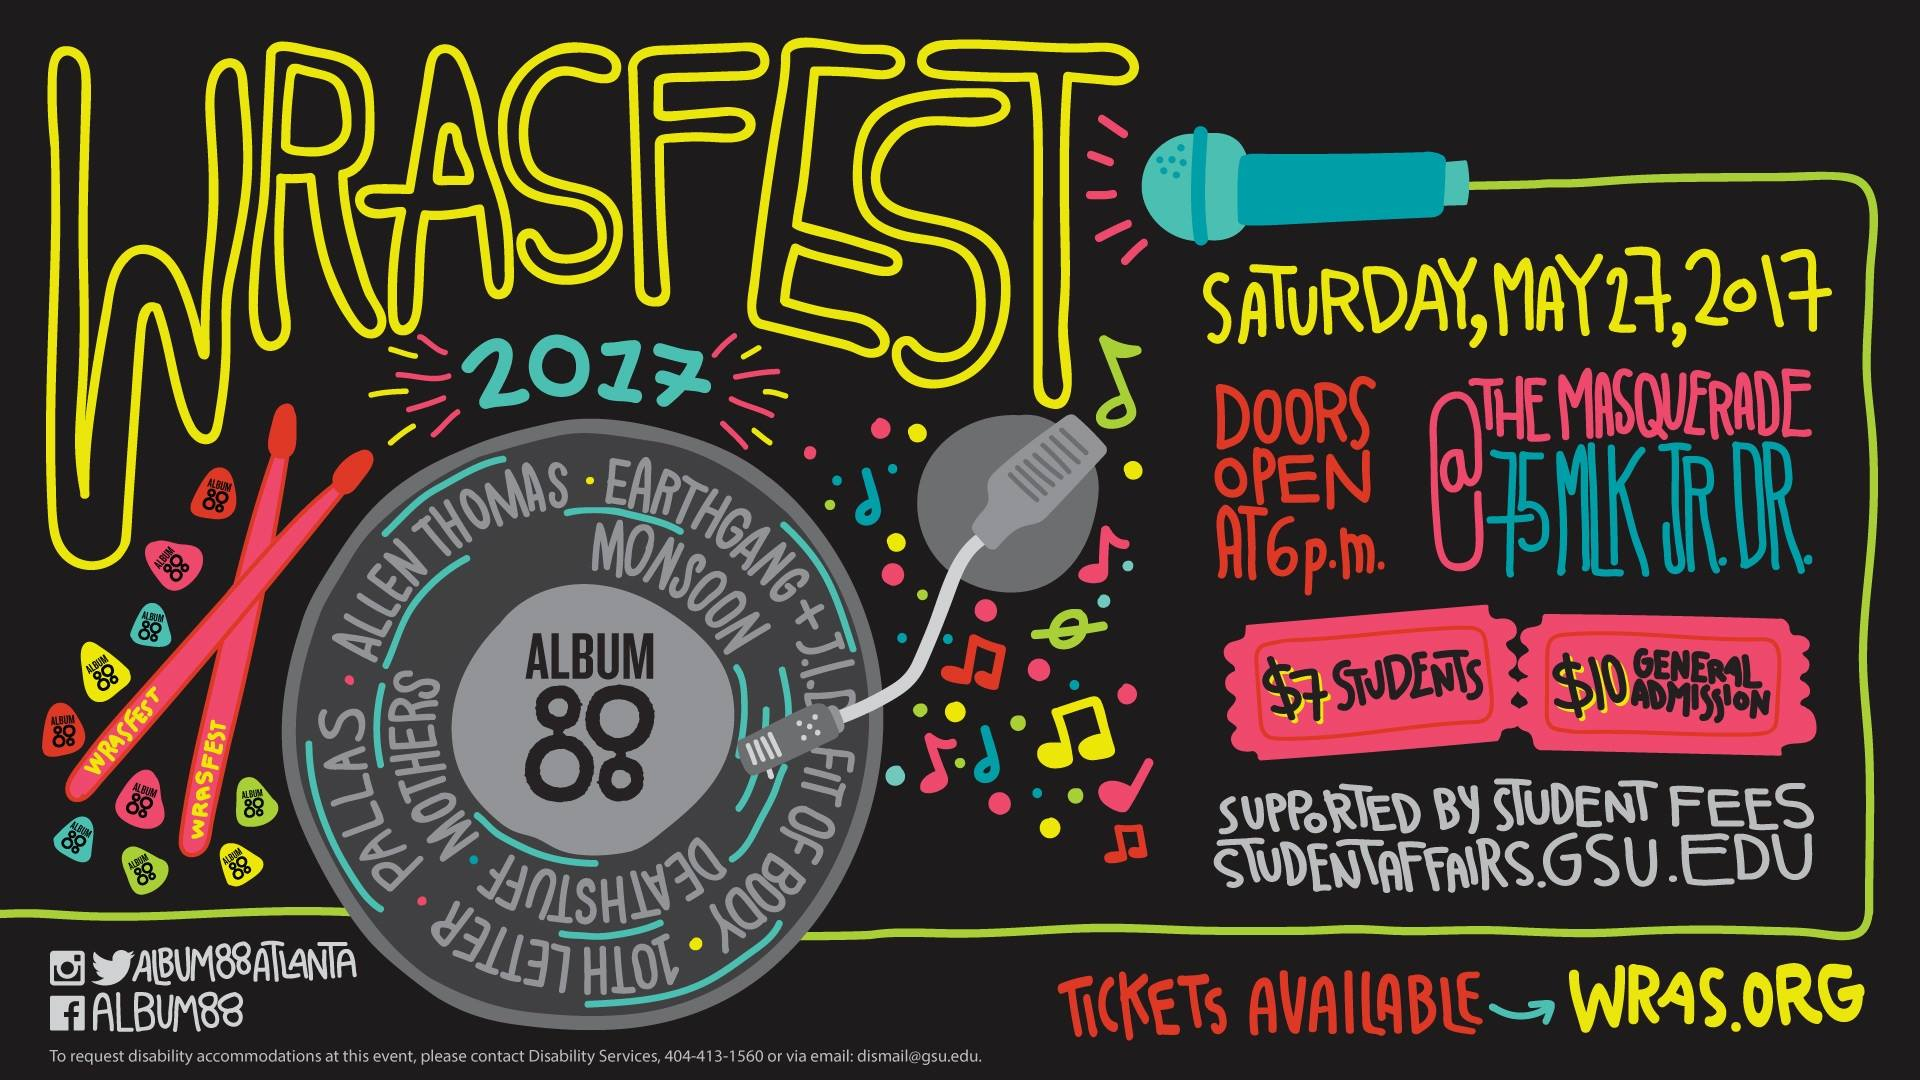 Georgia State University's 100,000 watt & 100% student run radio station is proud to announce another year of WRASFEST